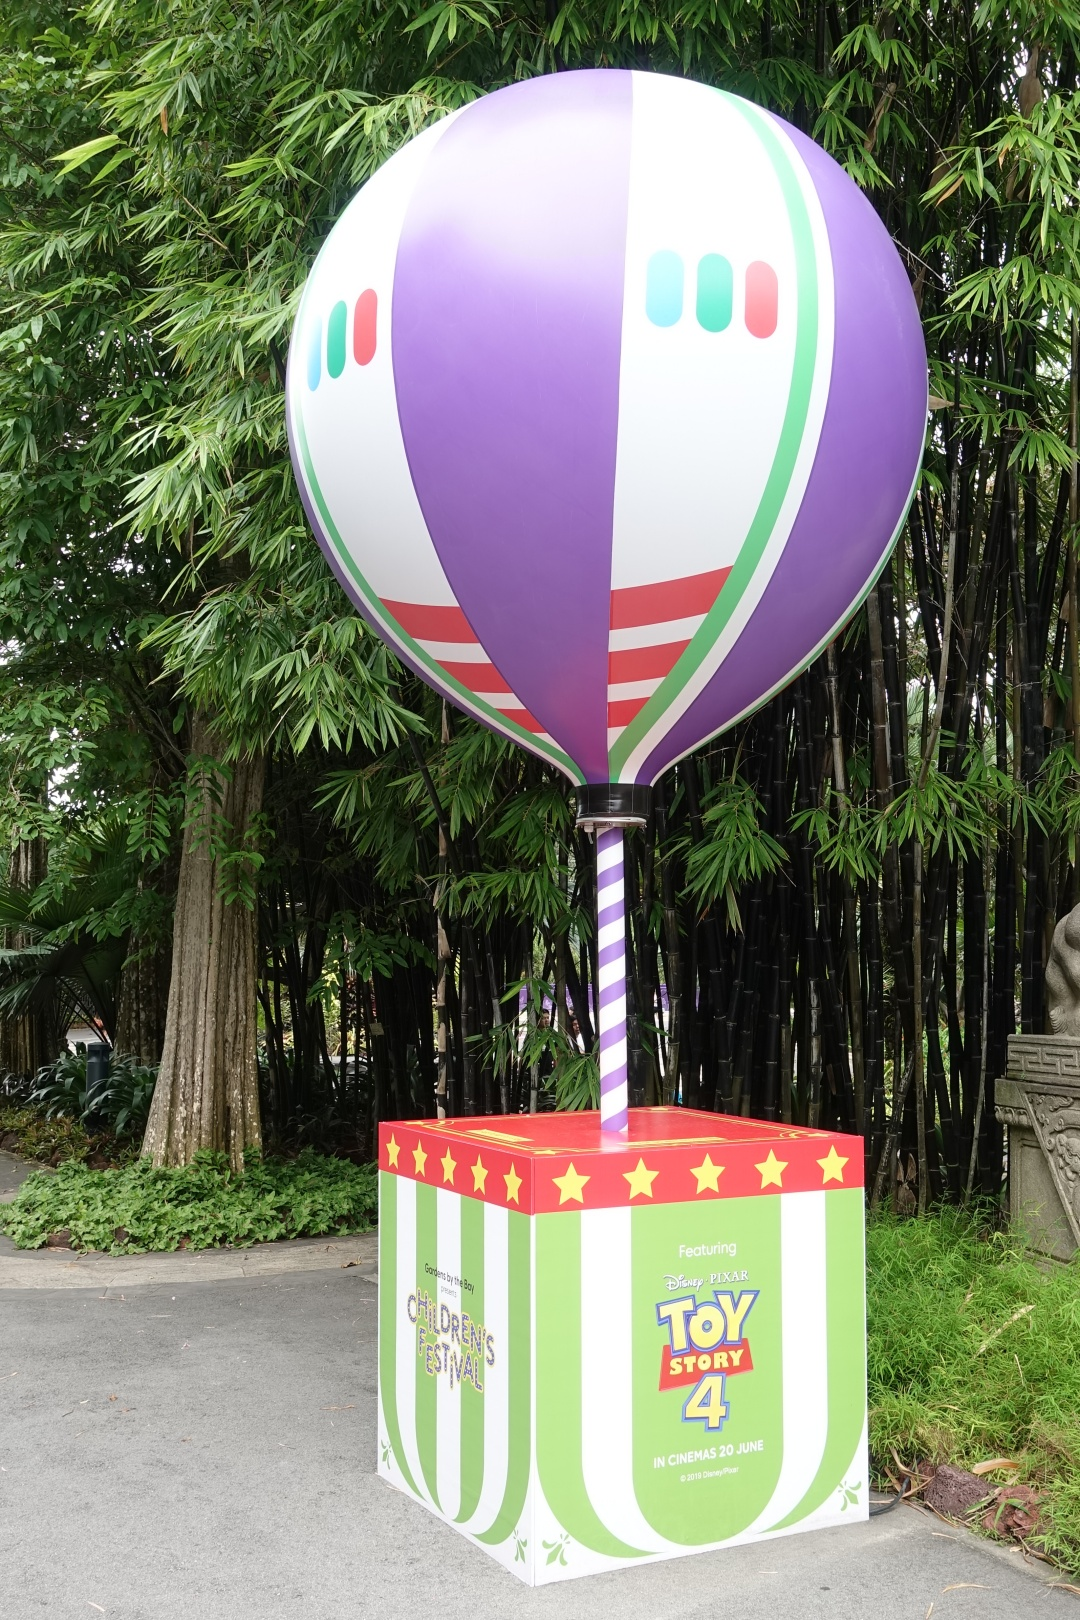 Buzz Lightyear Toy Story theme balloon at Children's Festival | joanne-khoo.com